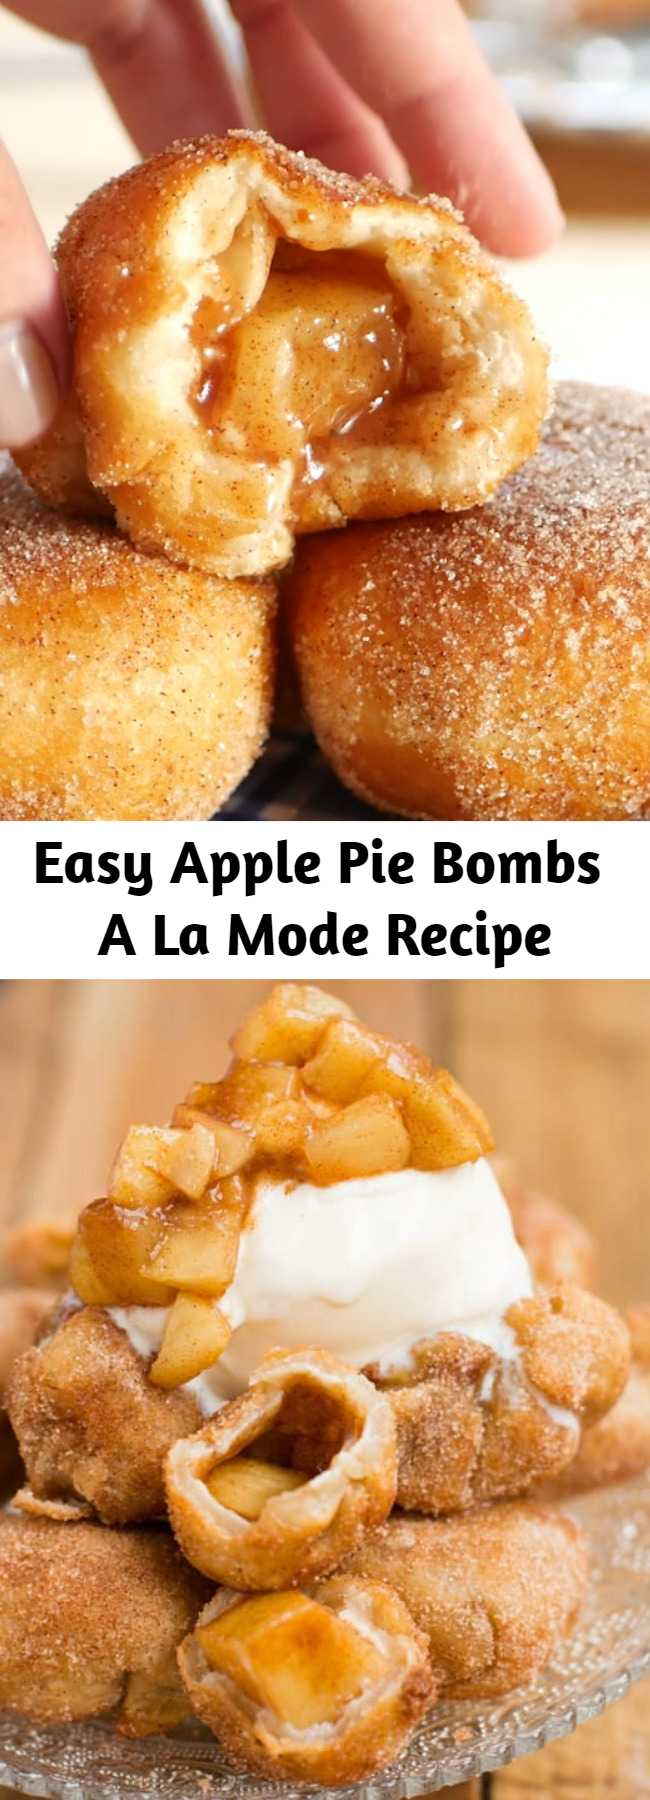 Easy Apple Pie Bombs A La Mode Recipe - It's not fall until you've made apple pie bombs a la mode with creamy vanilla ice cream and those glazed apples all over the tops. I love fall dessert recipes!